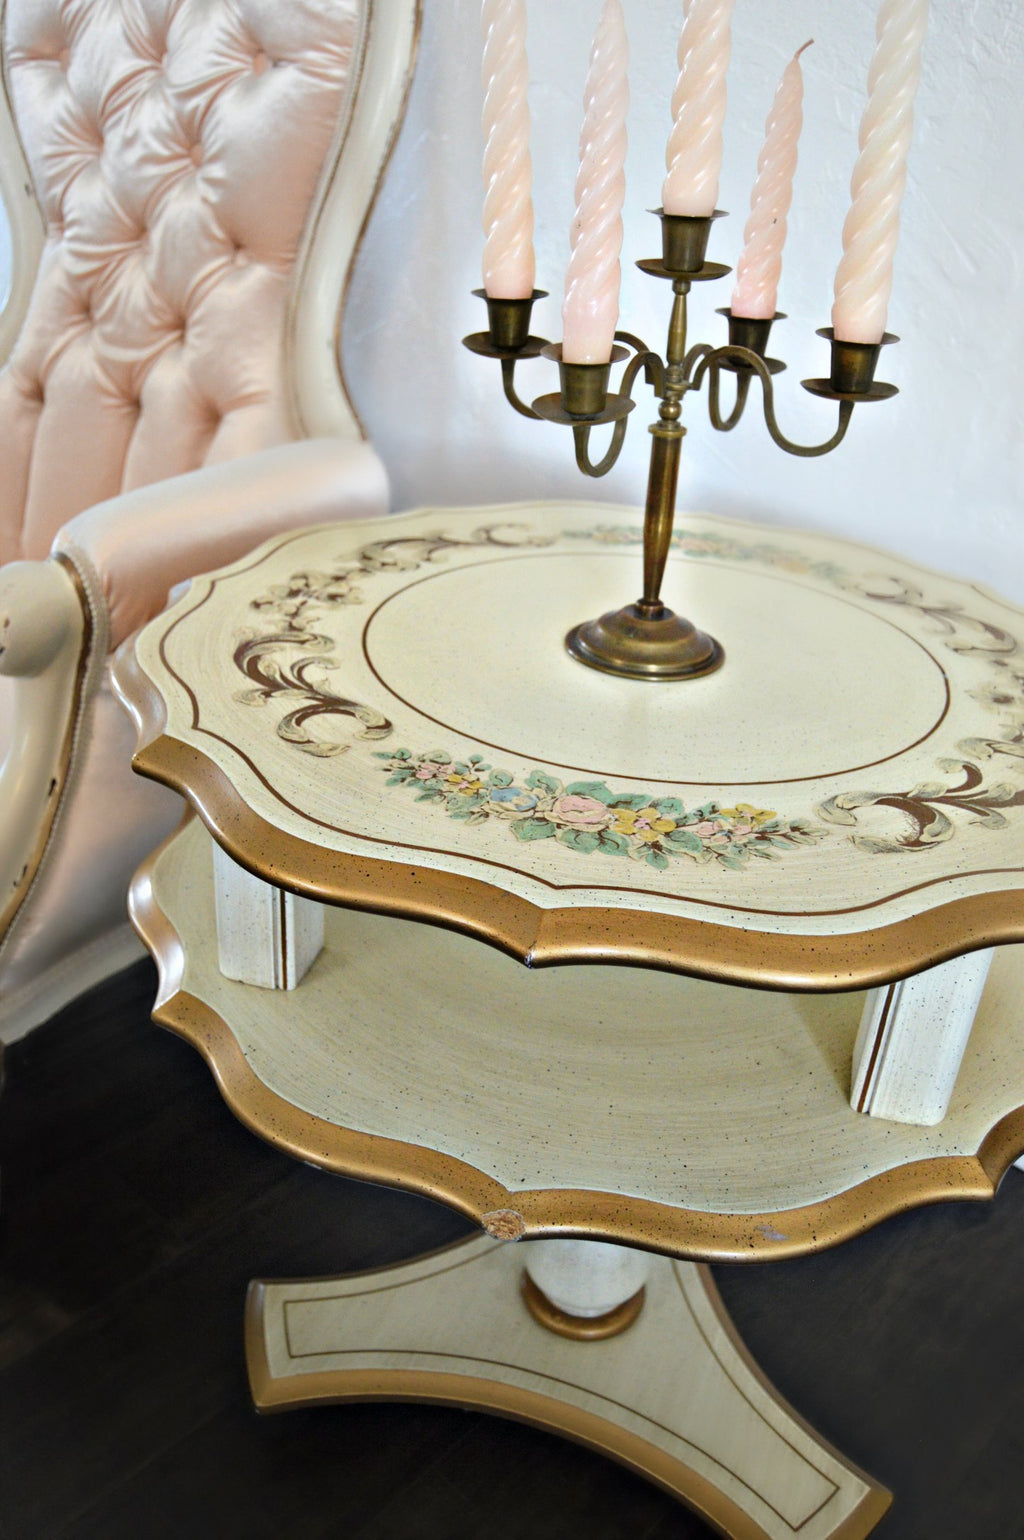 Vintage end table with hand painted pastel floral and gold details